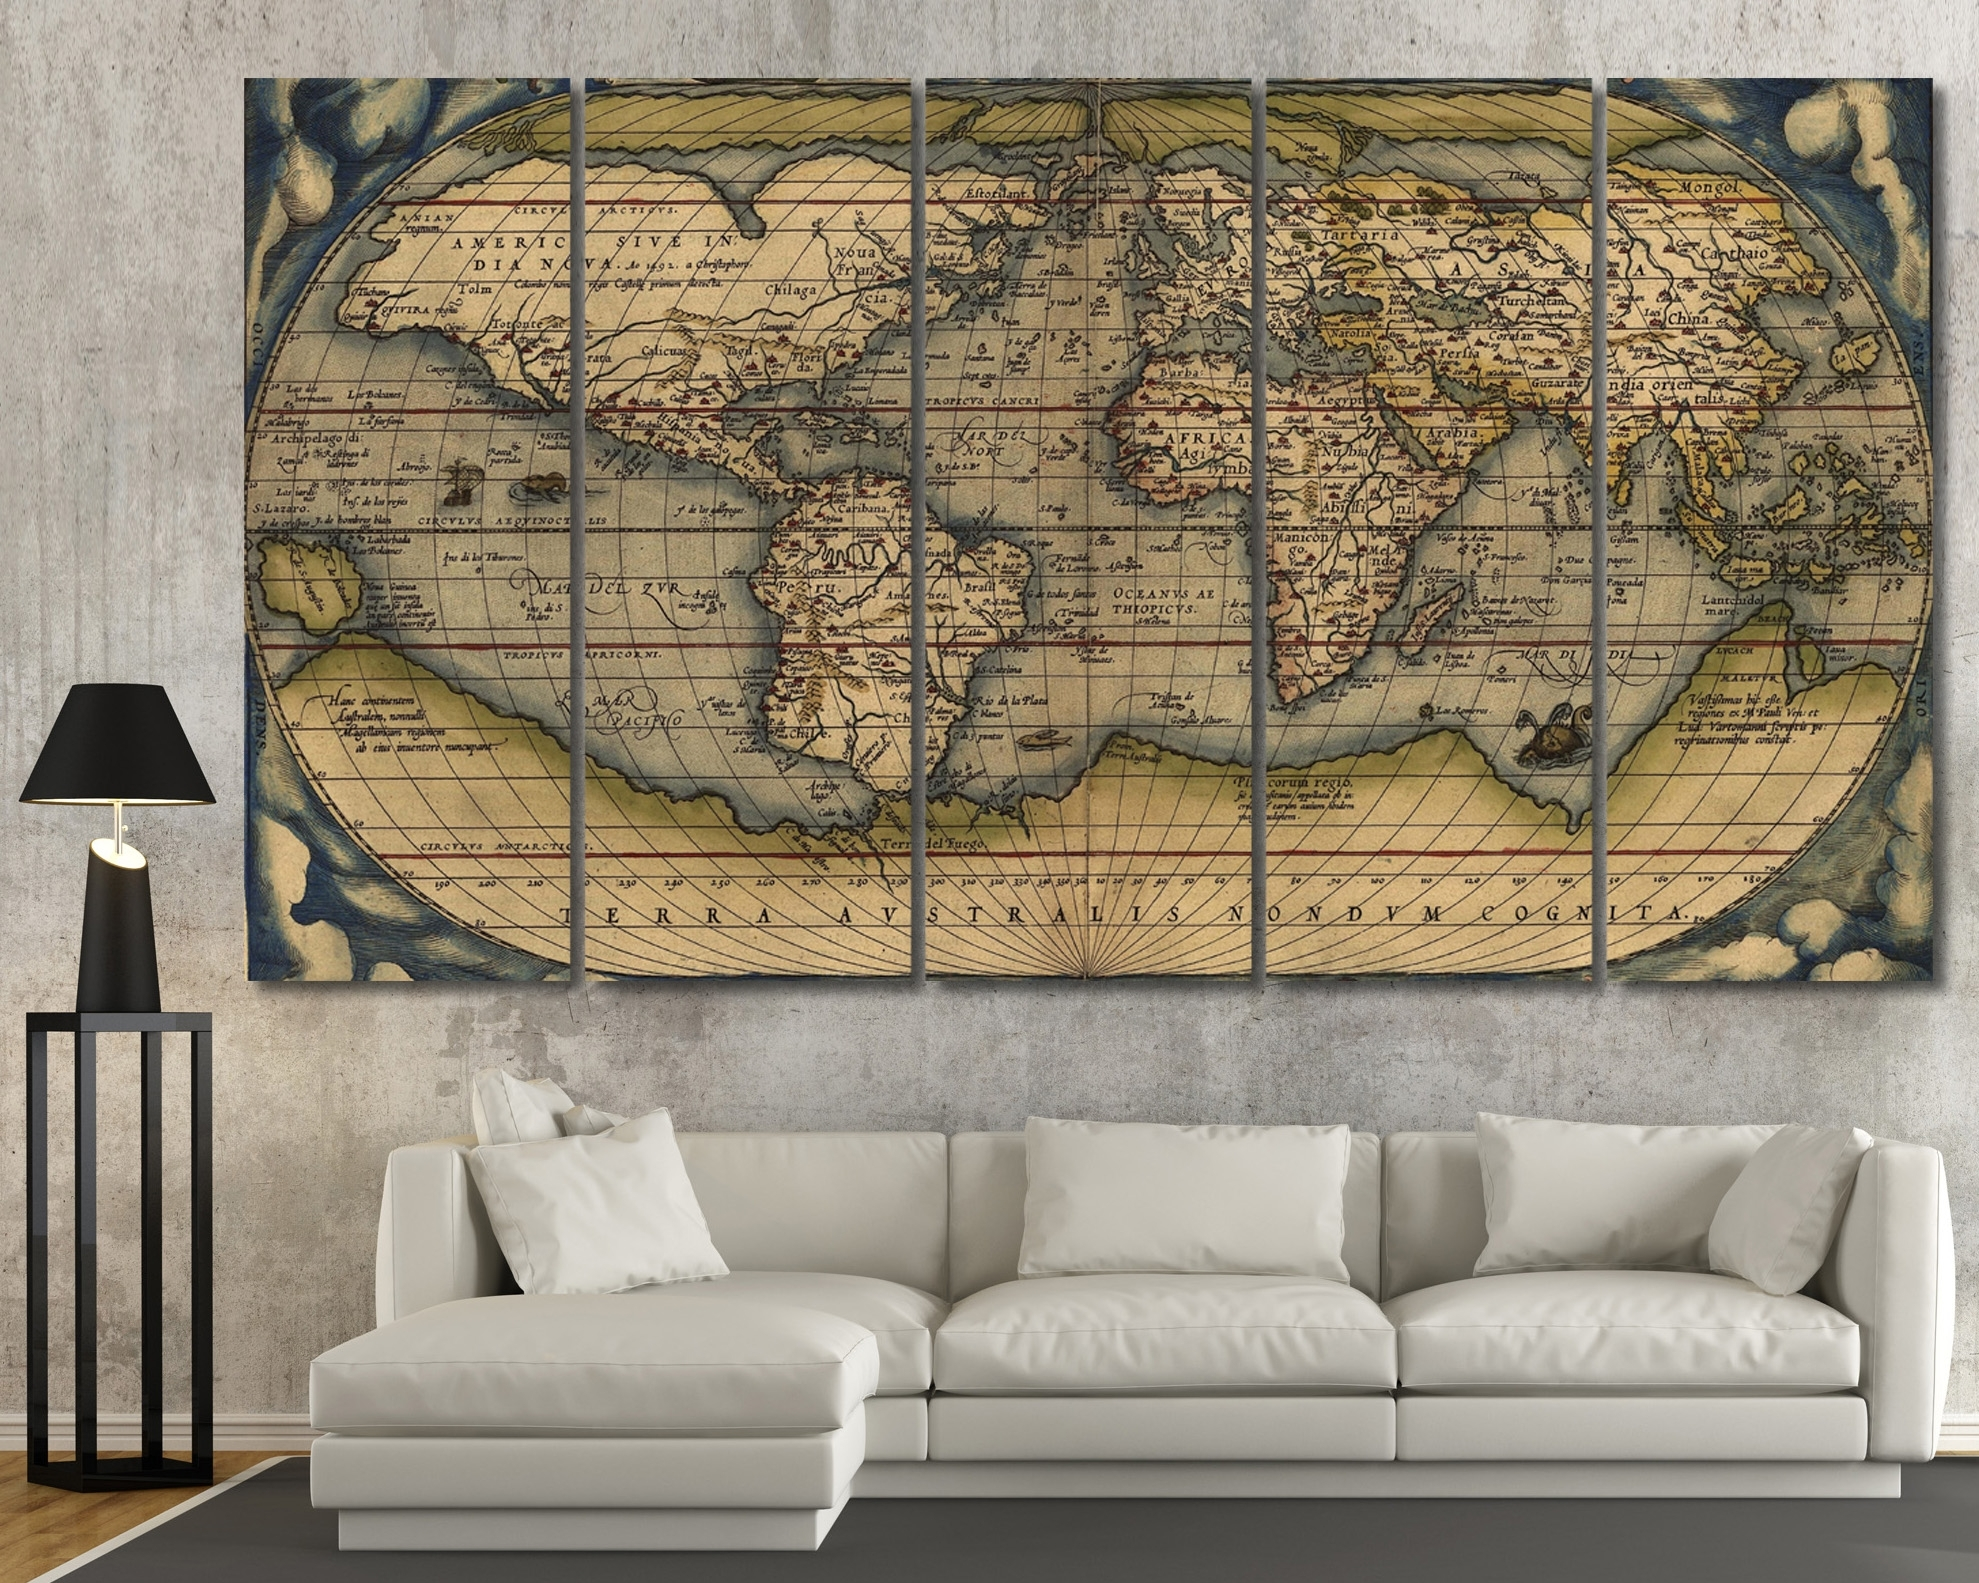 Luxury Wall Art Vintage - Home Design And Wall Decoration Ideas regarding Map Wall Art (Image 11 of 20)